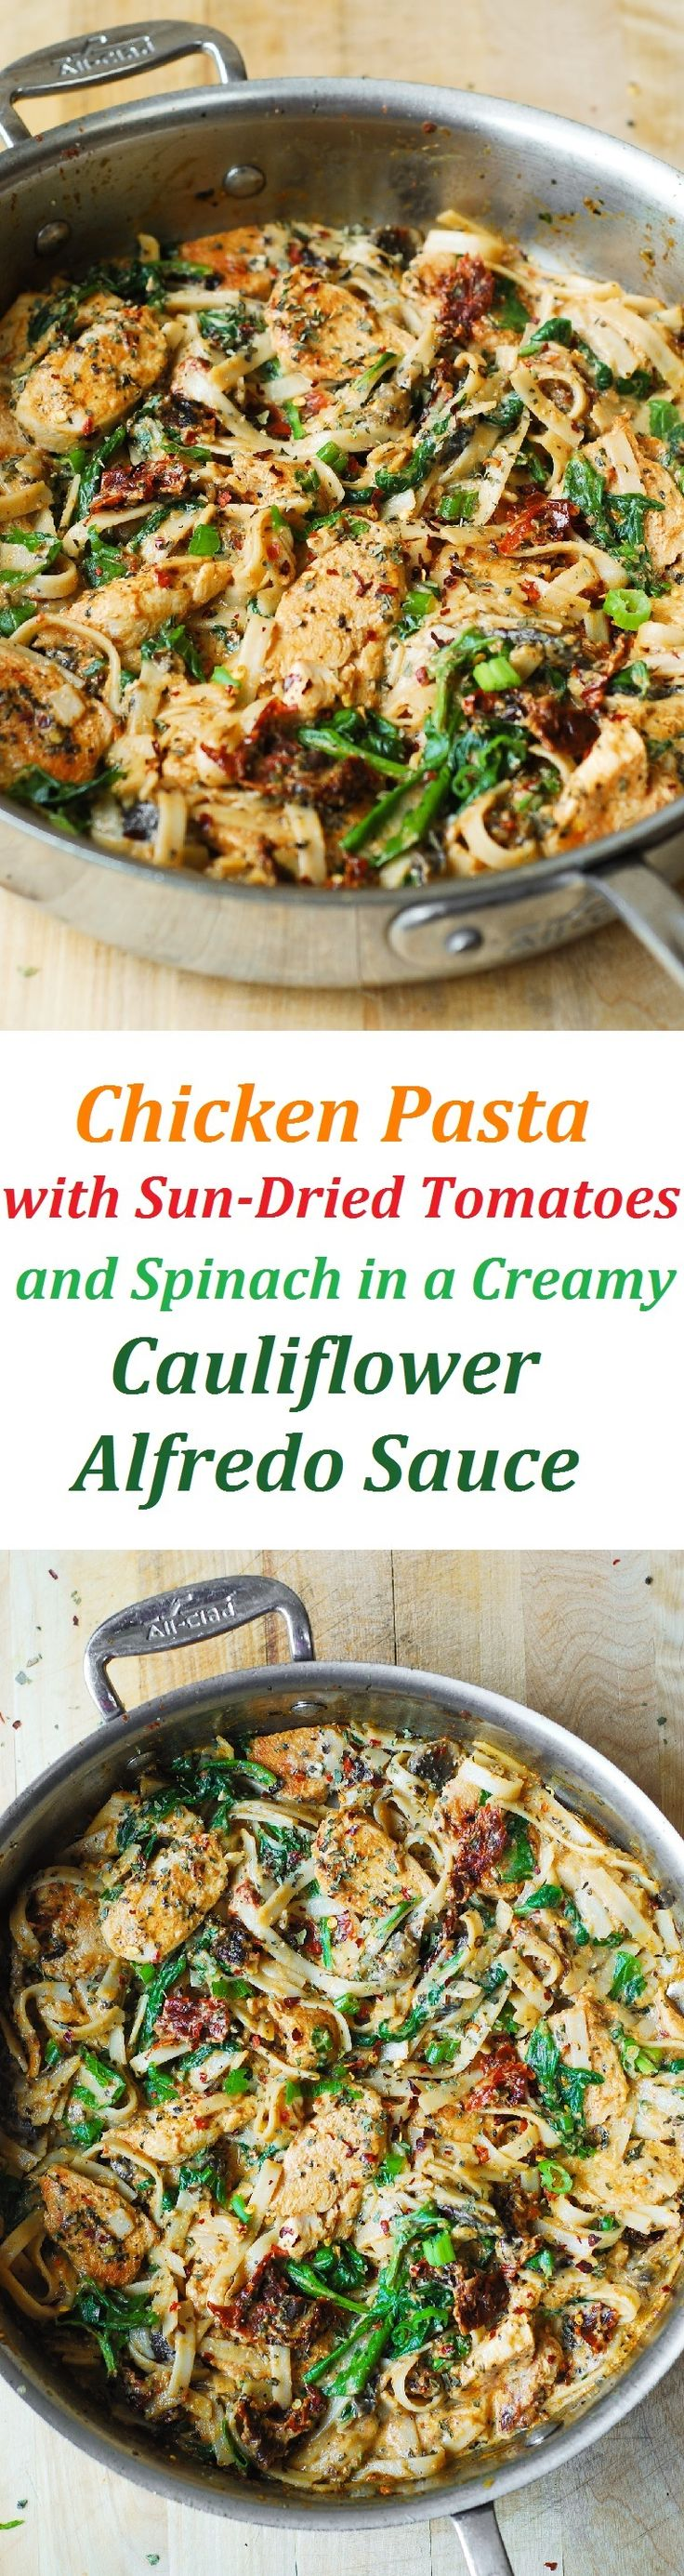 recipe: tasty cauliflower alfredo sauce [37]